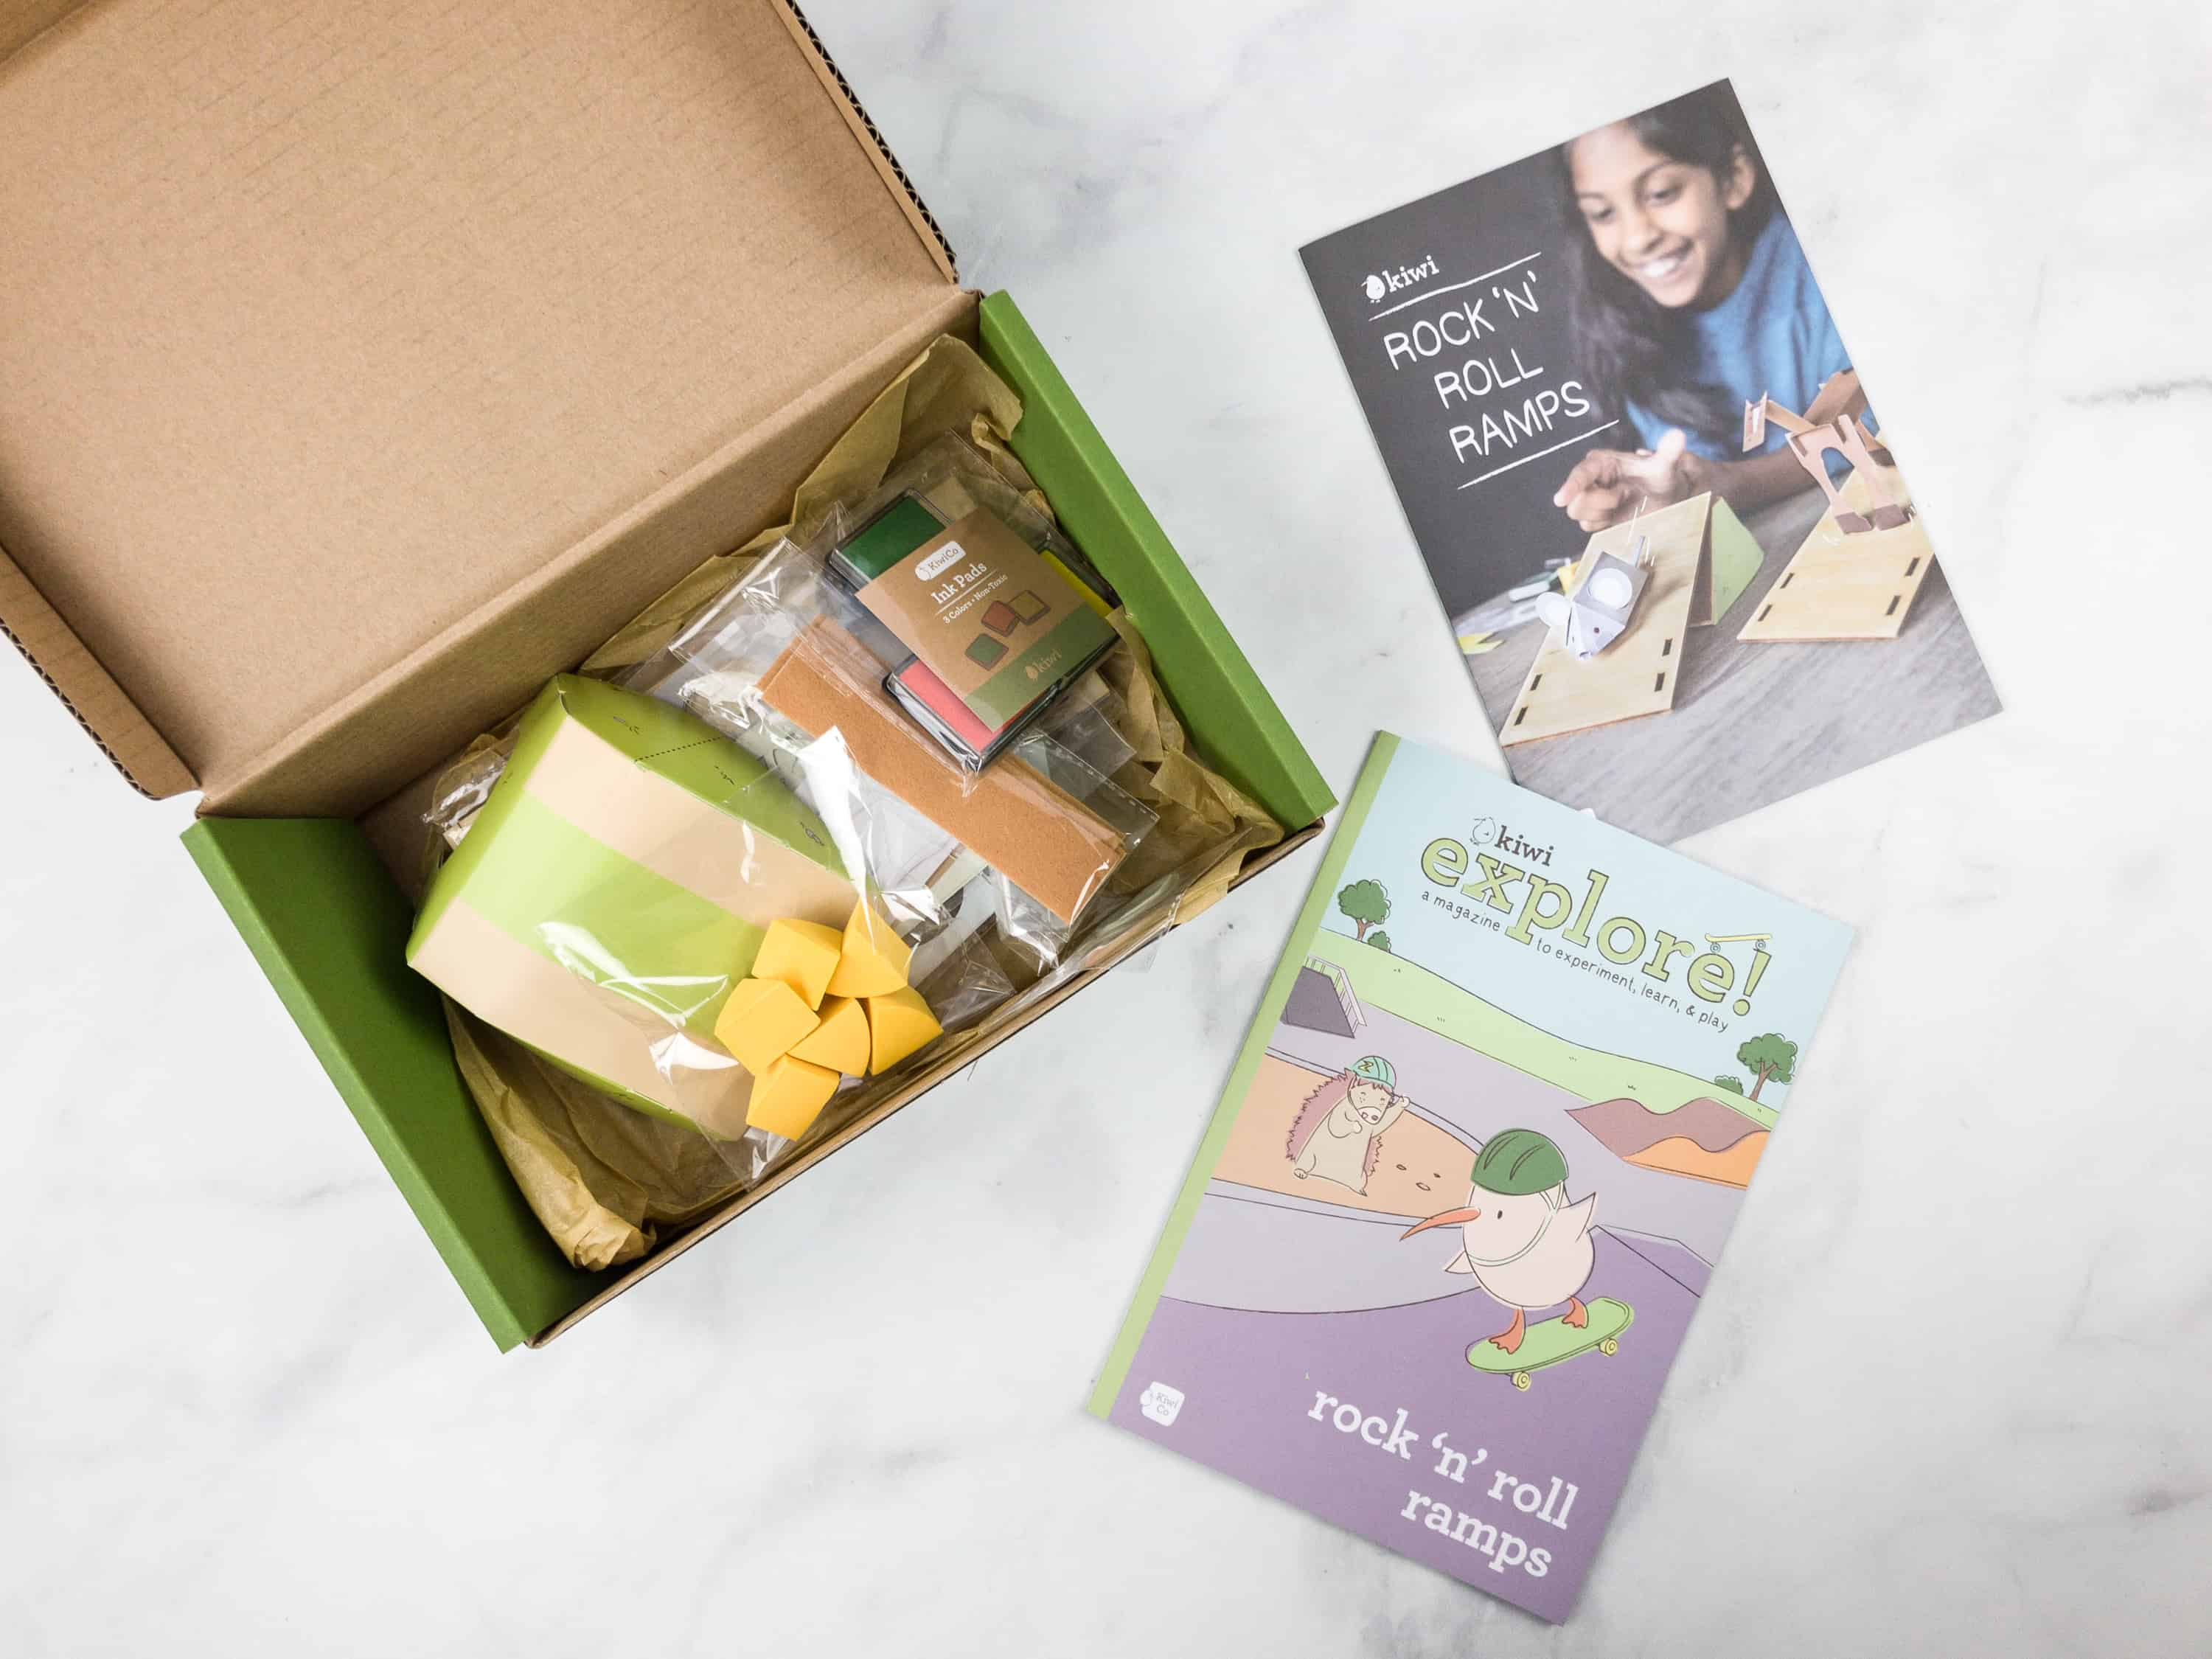 Kiwi Crate February 2018 Review & Coupon – Rock N Roll Ramps Box!